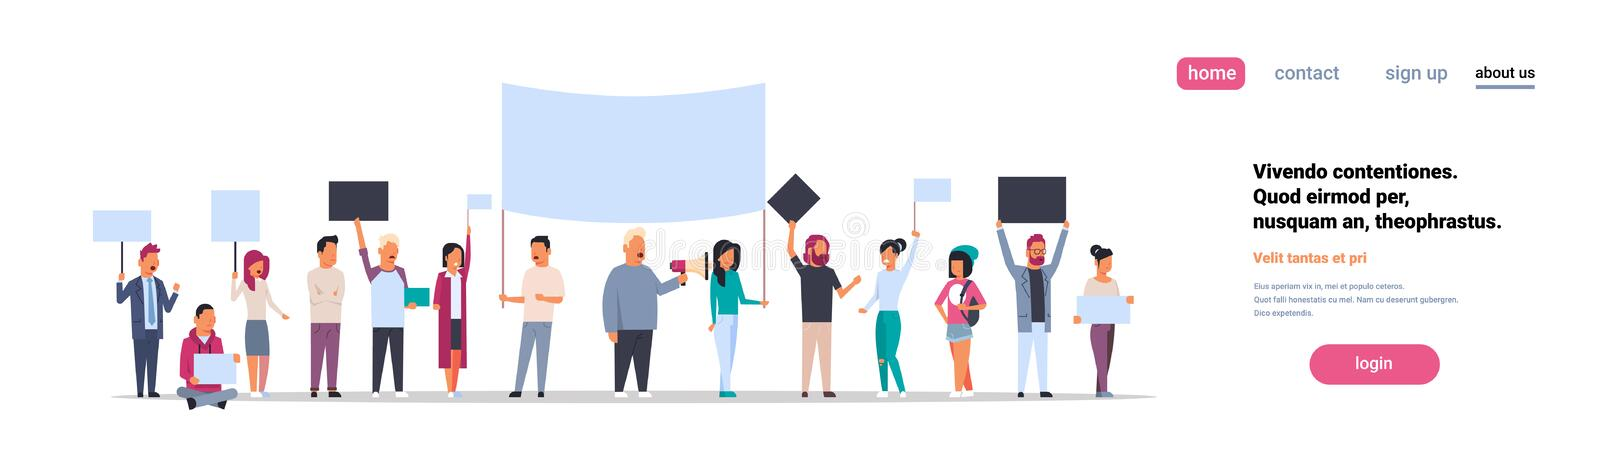 People group holding placards and megaphone cityscape background protesting crowd demonstration picket or conflict. Concept isolated horizontal copy space royalty free illustration